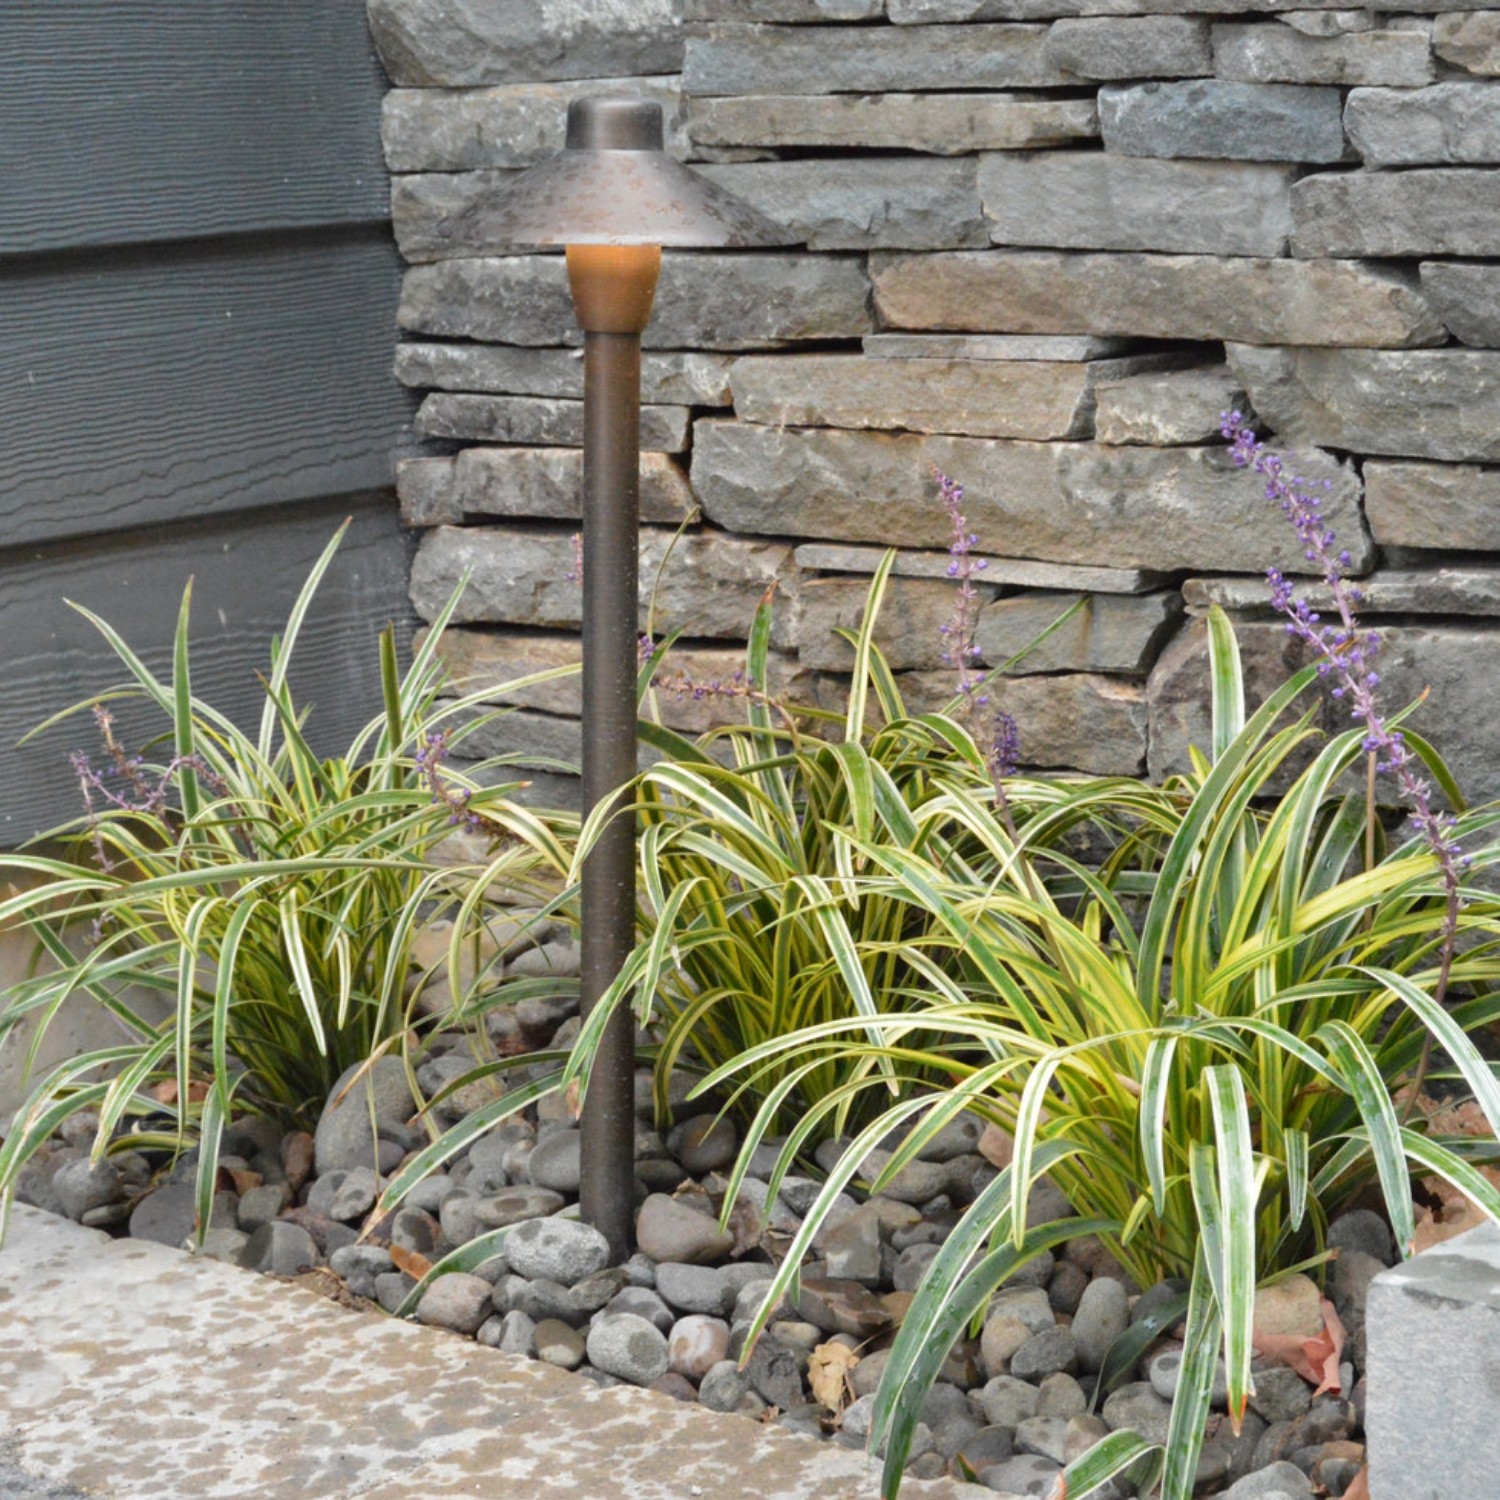 Landscaping services in Goshen, NY